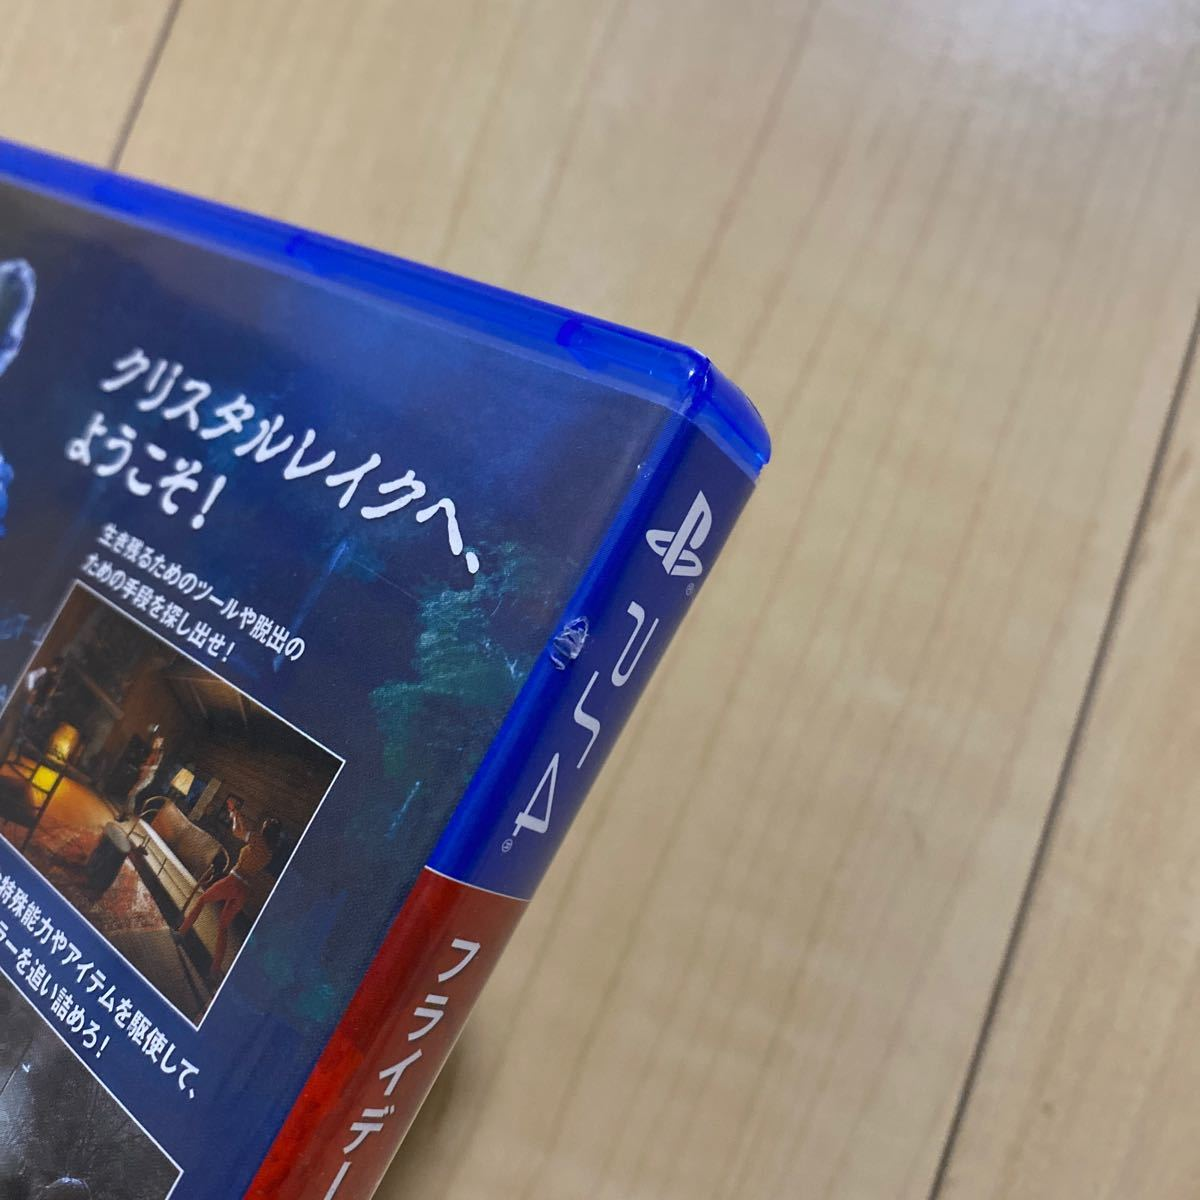 PS4ソフト PS4 FRIDAY THE GAME ザ・ゲーム 13日の金曜日 日本語版